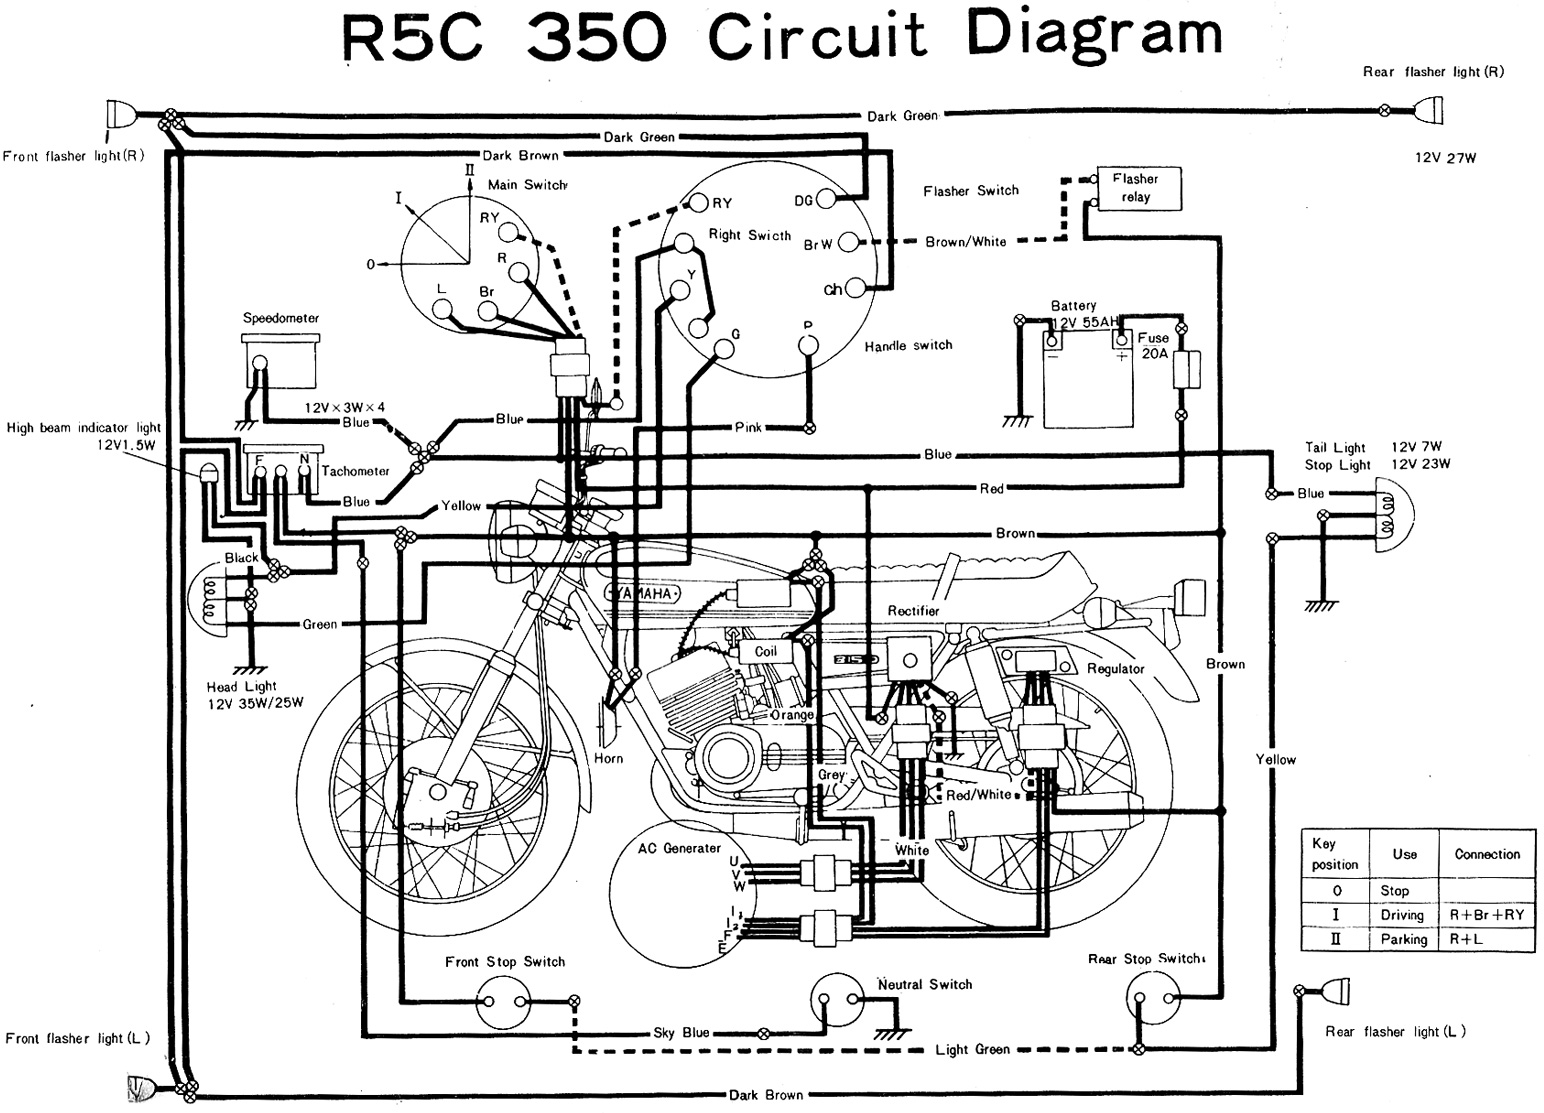 motorcycle wiring diagrams evan fell motorcycle worksevan fell yamaha rd350 r5c wiring diagram